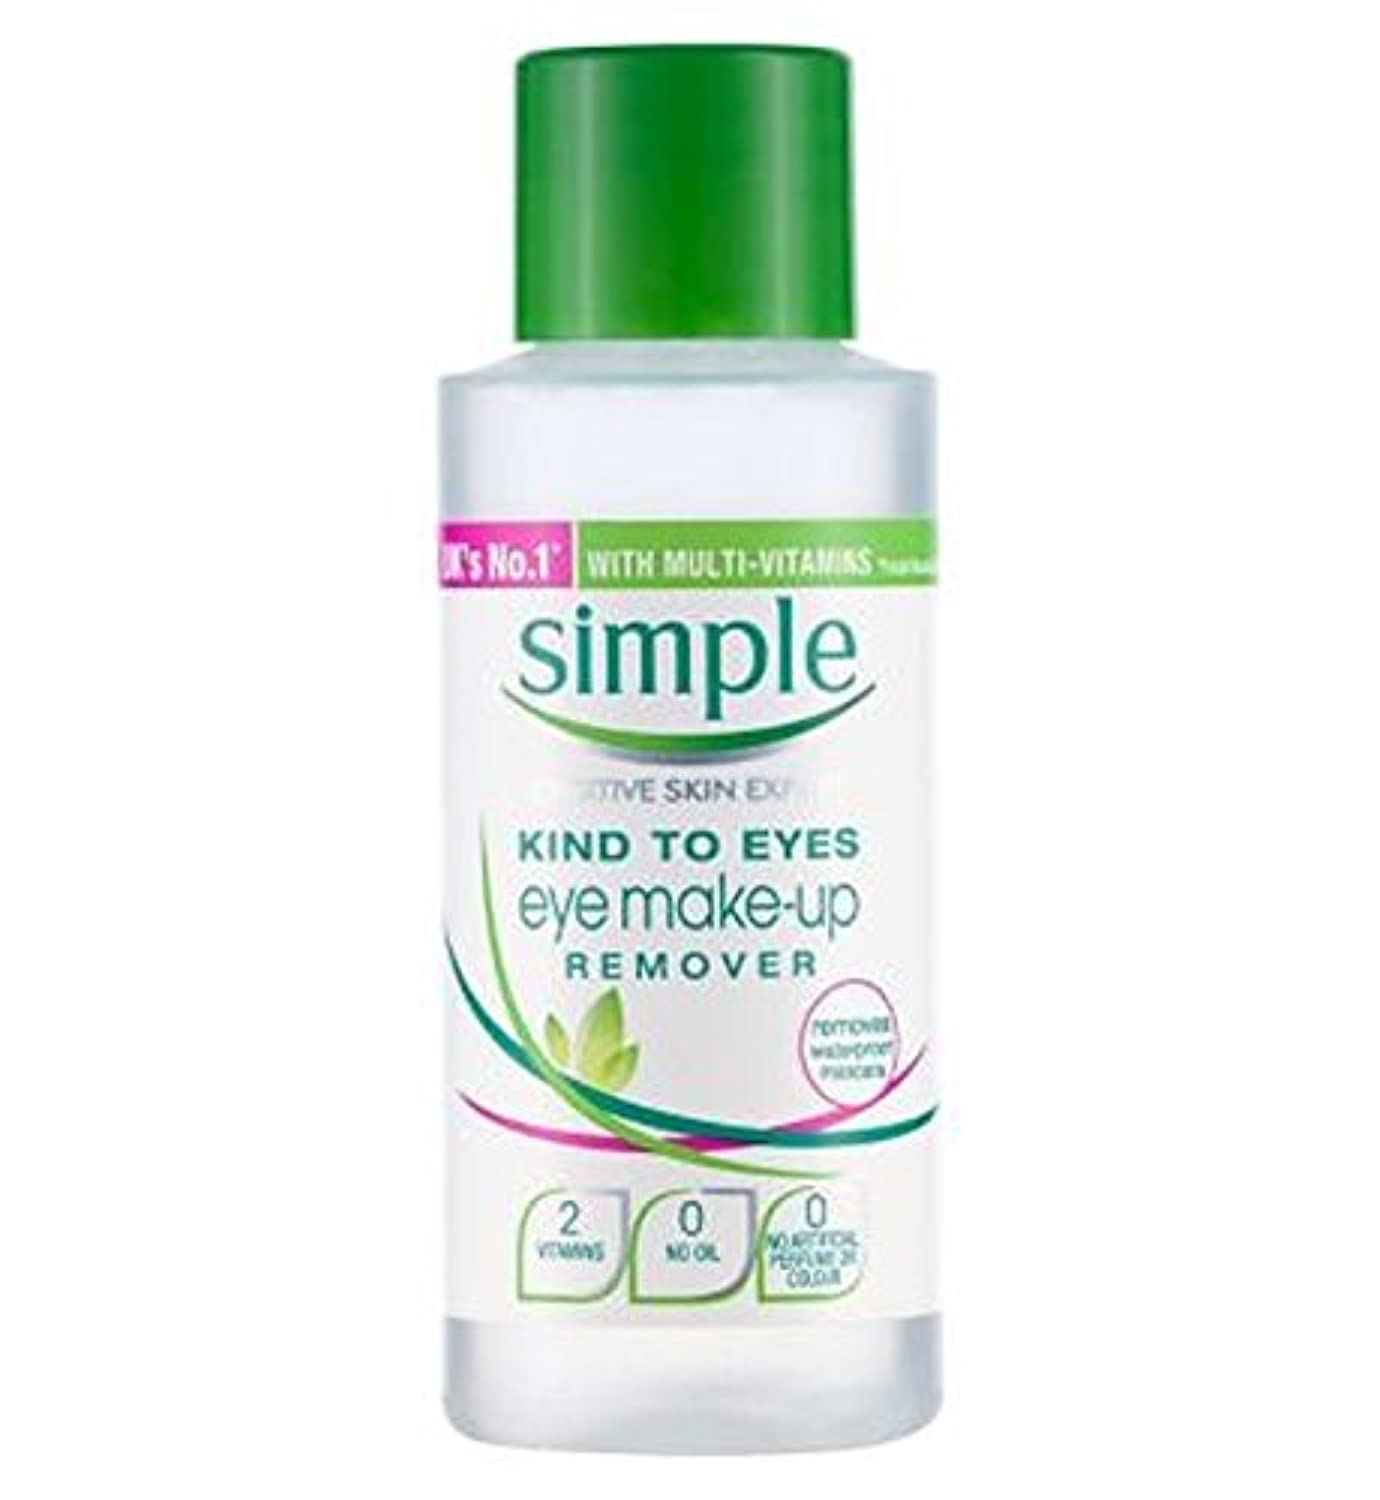 Simple Kind to Eyes Eye Make-Up Remover 50ml - 目のアイメイクアップリムーバーの50ミリリットルへの単純な種類 (Simple) [並行輸入品]